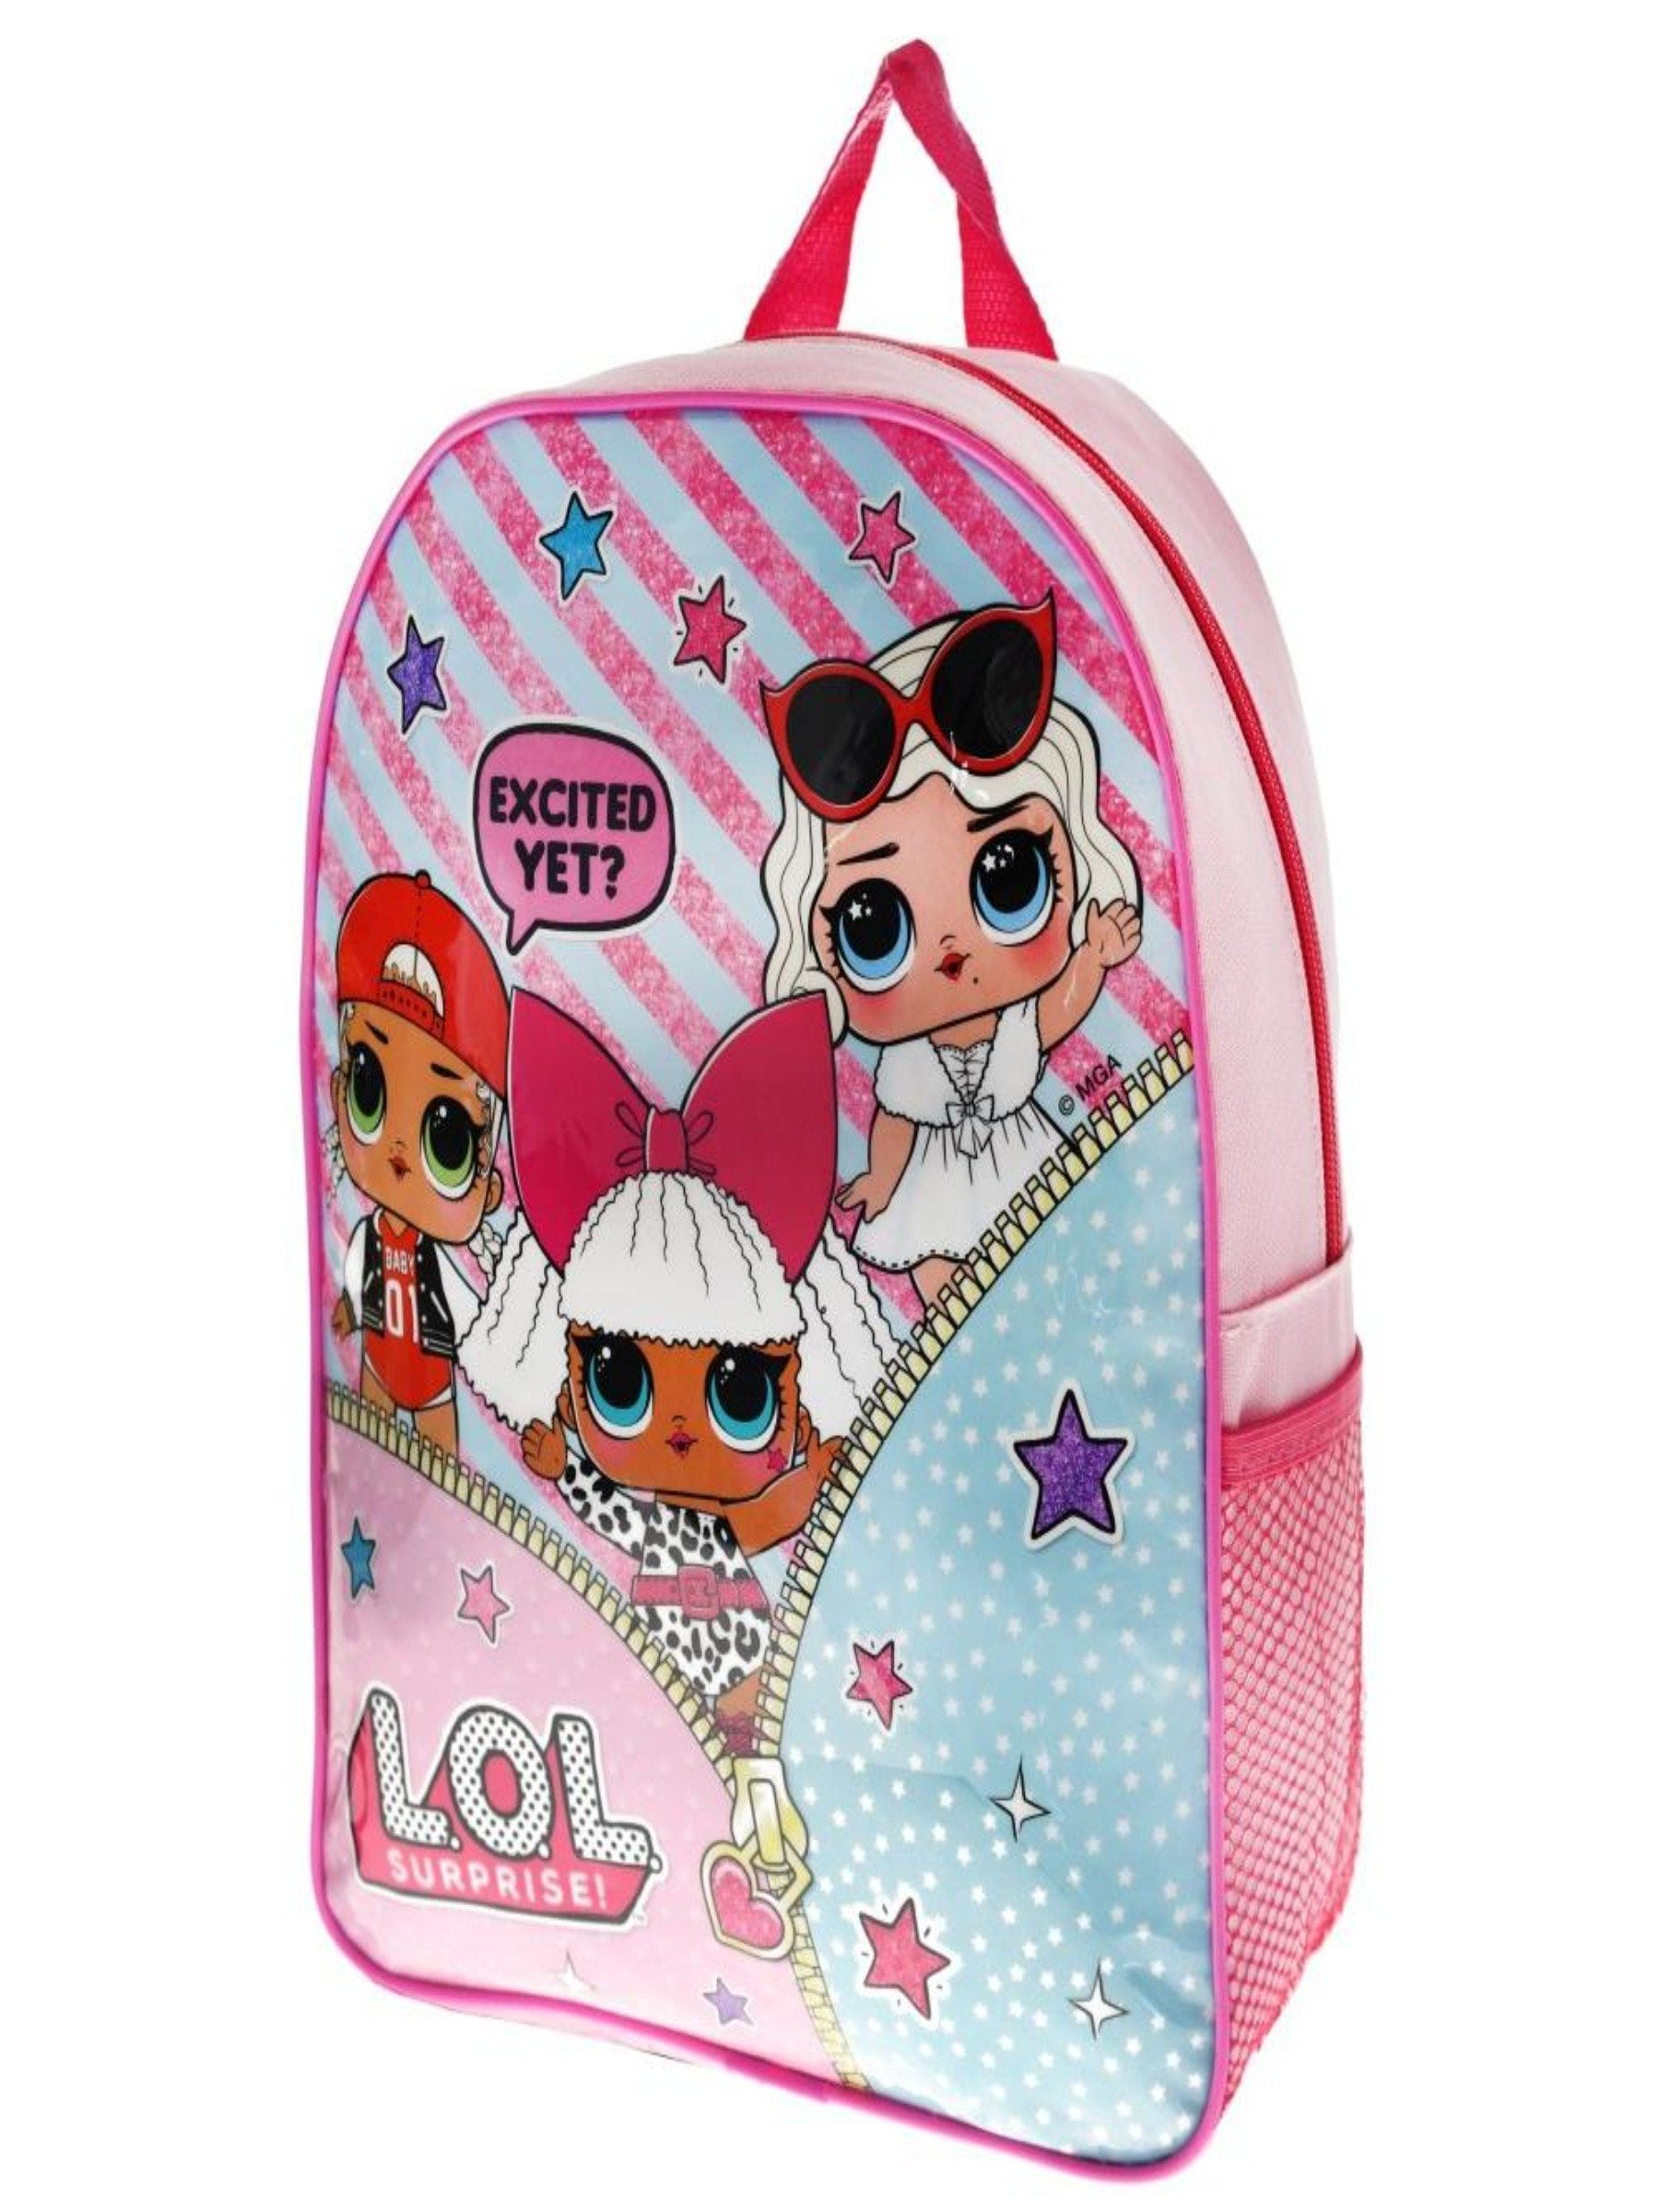 GIRL L.O.L SURPRISE BACKPACK SCHOOL BAG